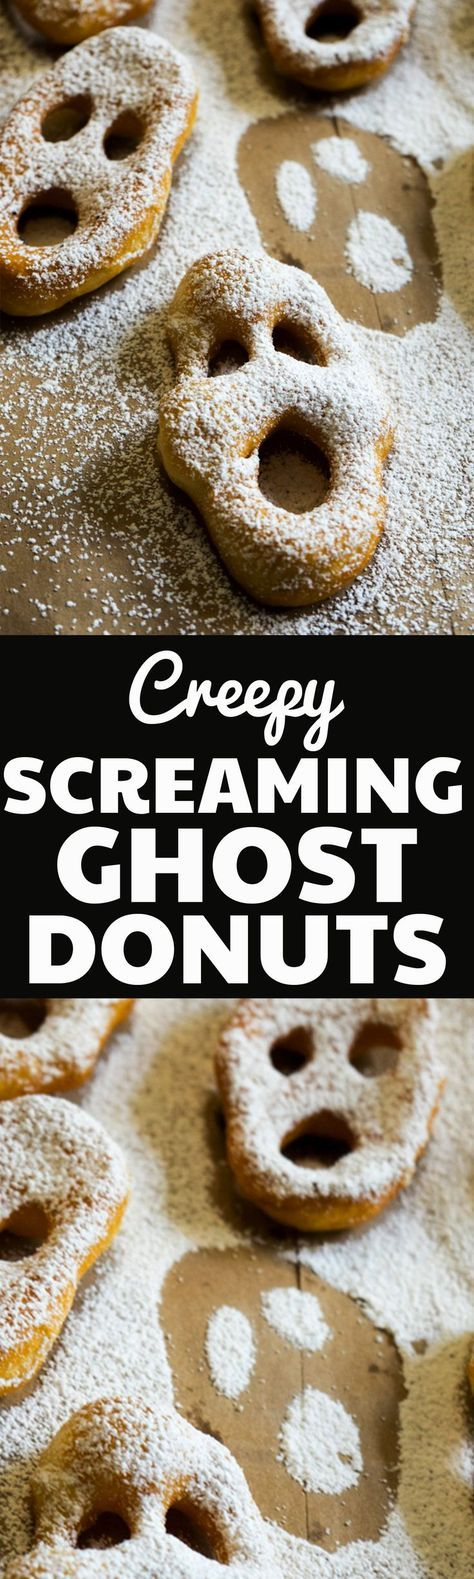 These Screaming Ghost Donuts Recipe are the perfect easy dessert for a creepy party this Halloween! They are so easy to make using refrigerated biscuit dough and are always a hit!